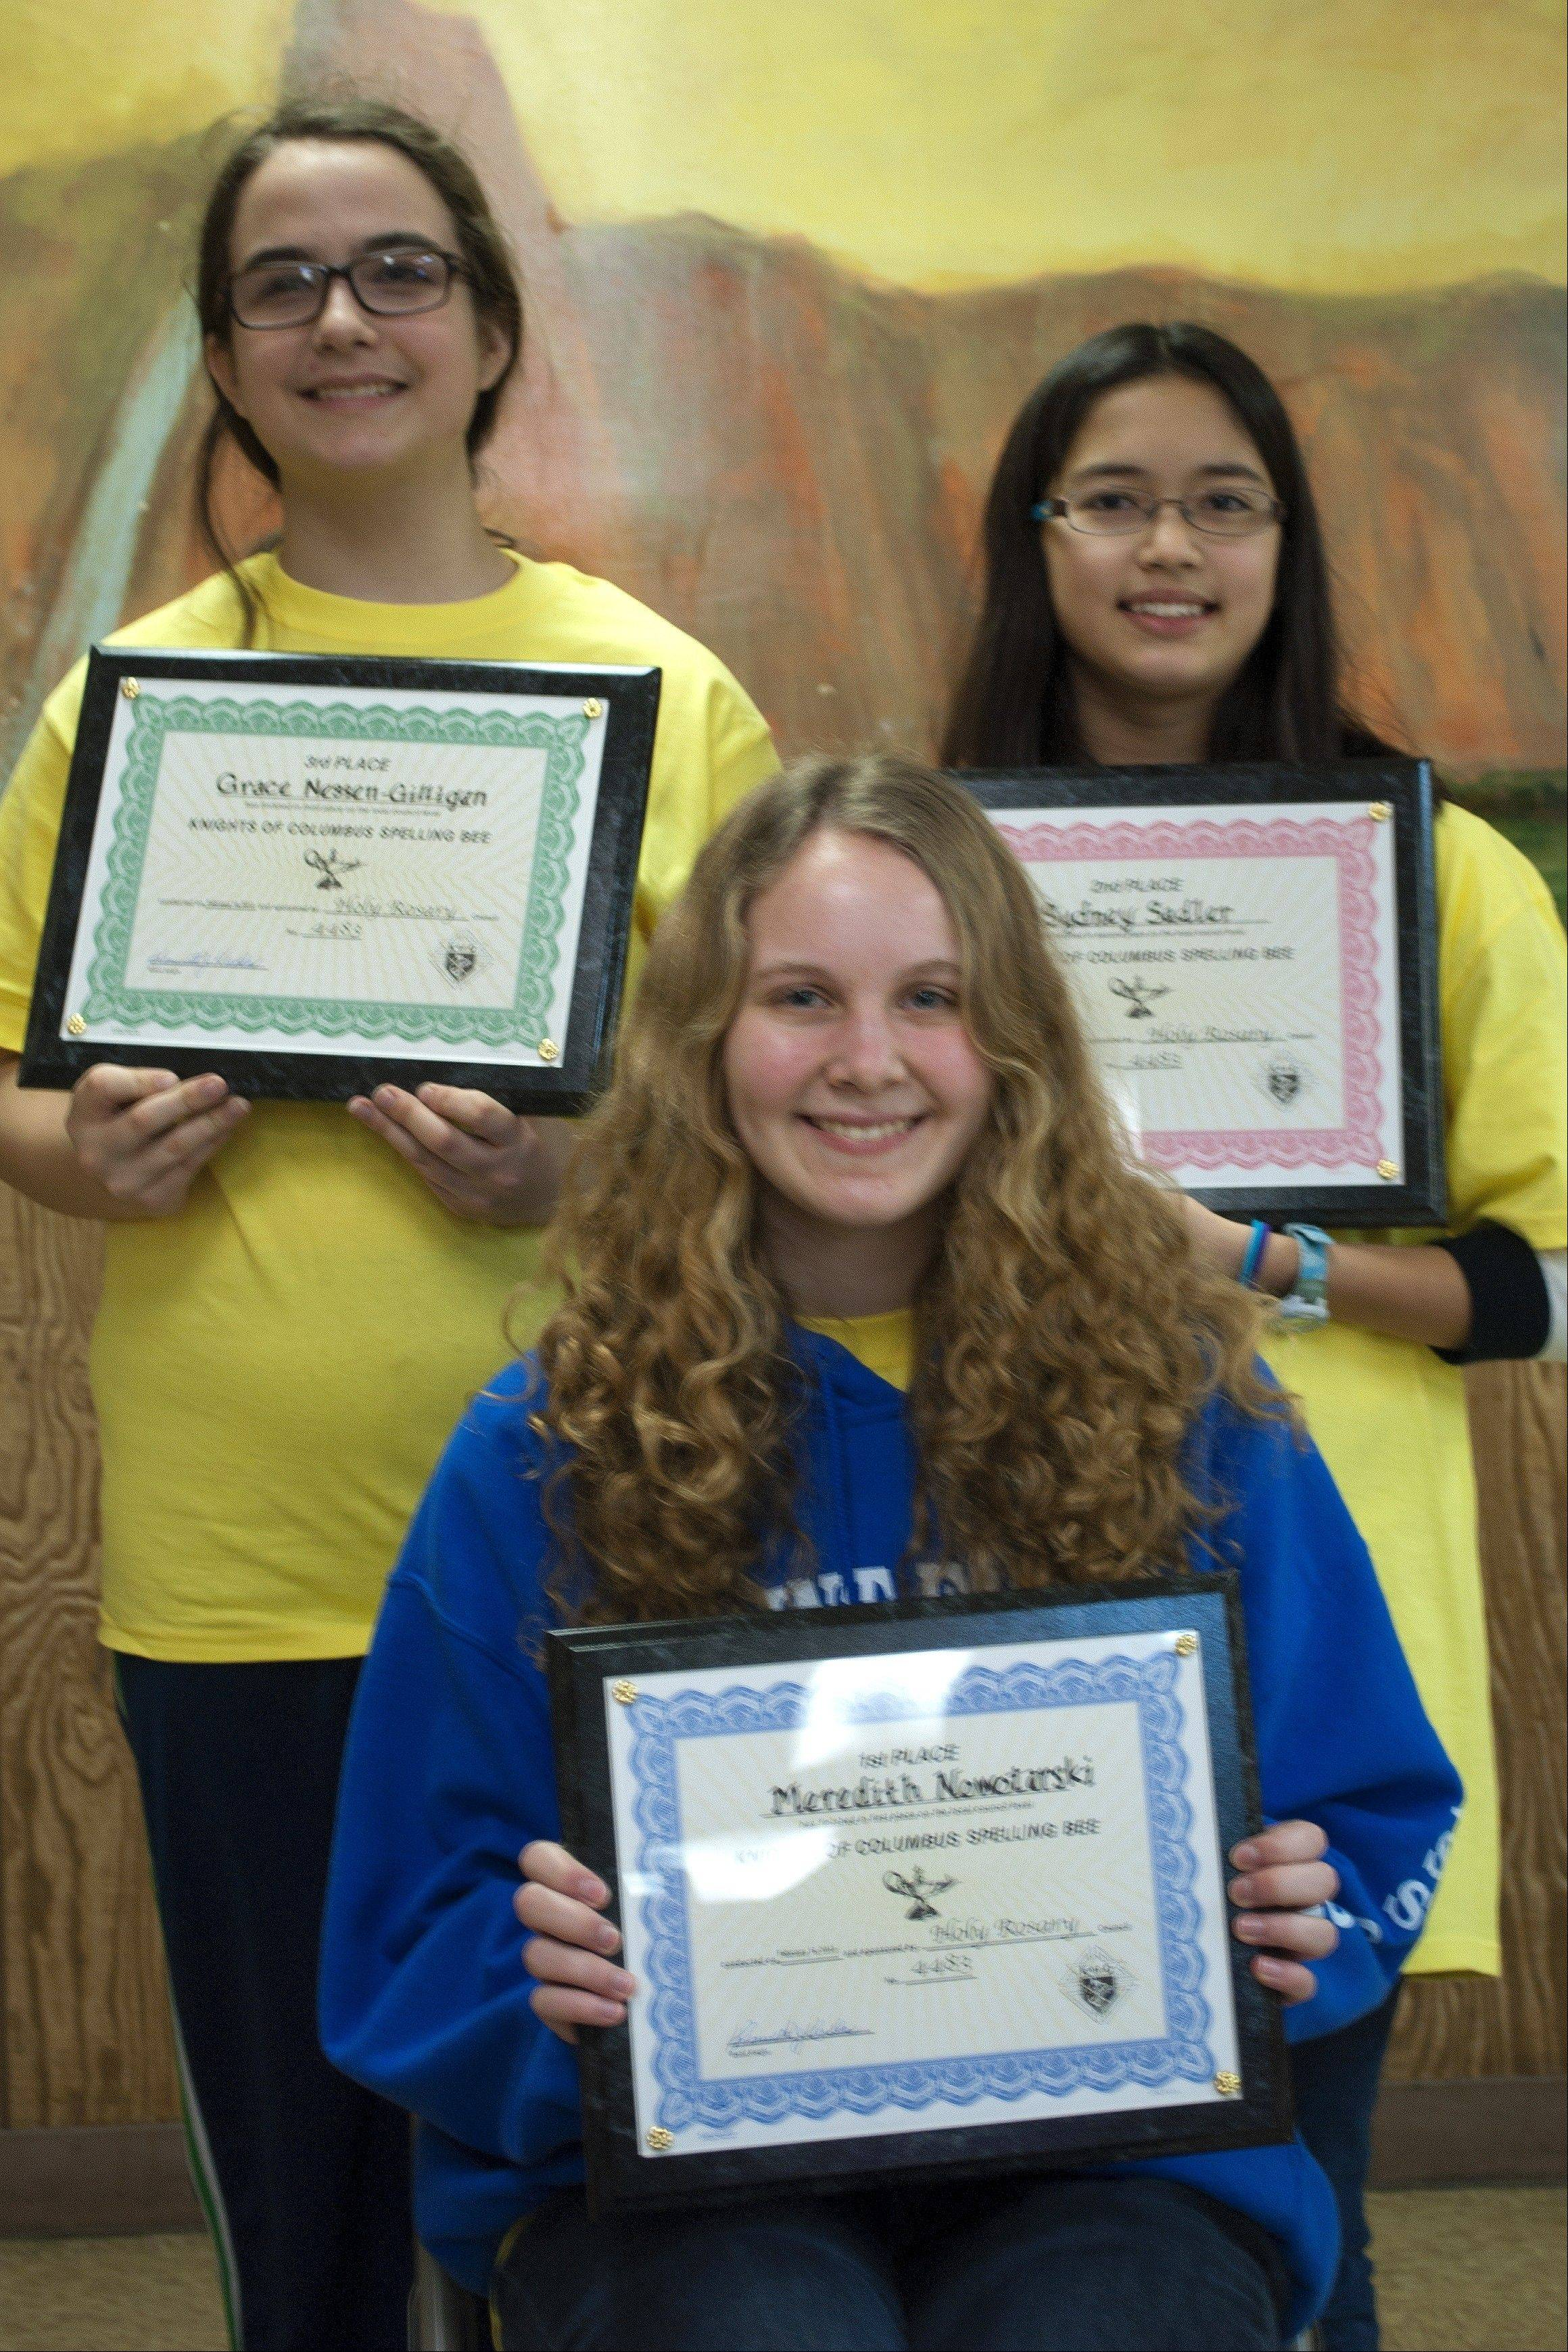 Winners of the 31st annual Knights of Columbus Spelling Bee were: Meredith Nowotarski, seated, first place; and standing, from left, Grace Nessen-Gilligan, third place and Sydney Sadle, second place.